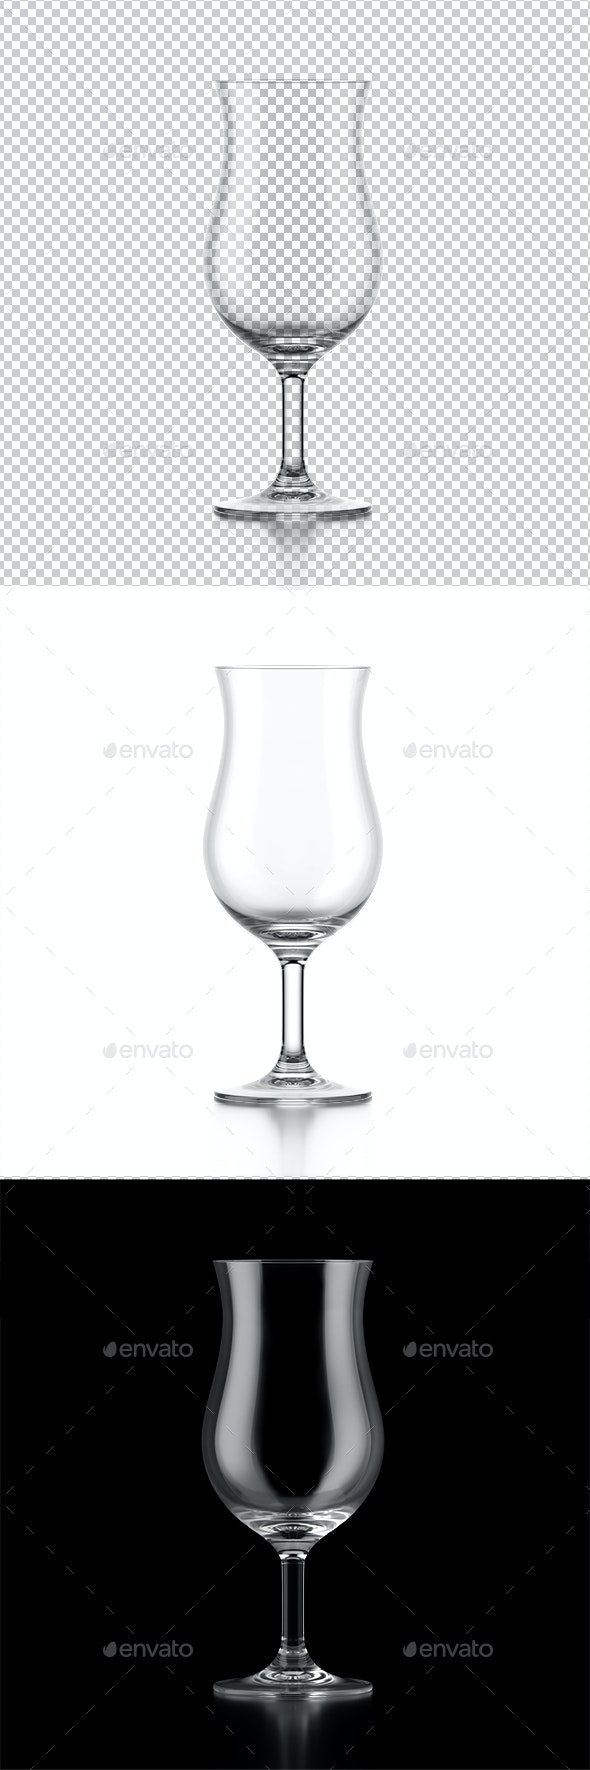 Cocktail Glass - Objects 3D Renders